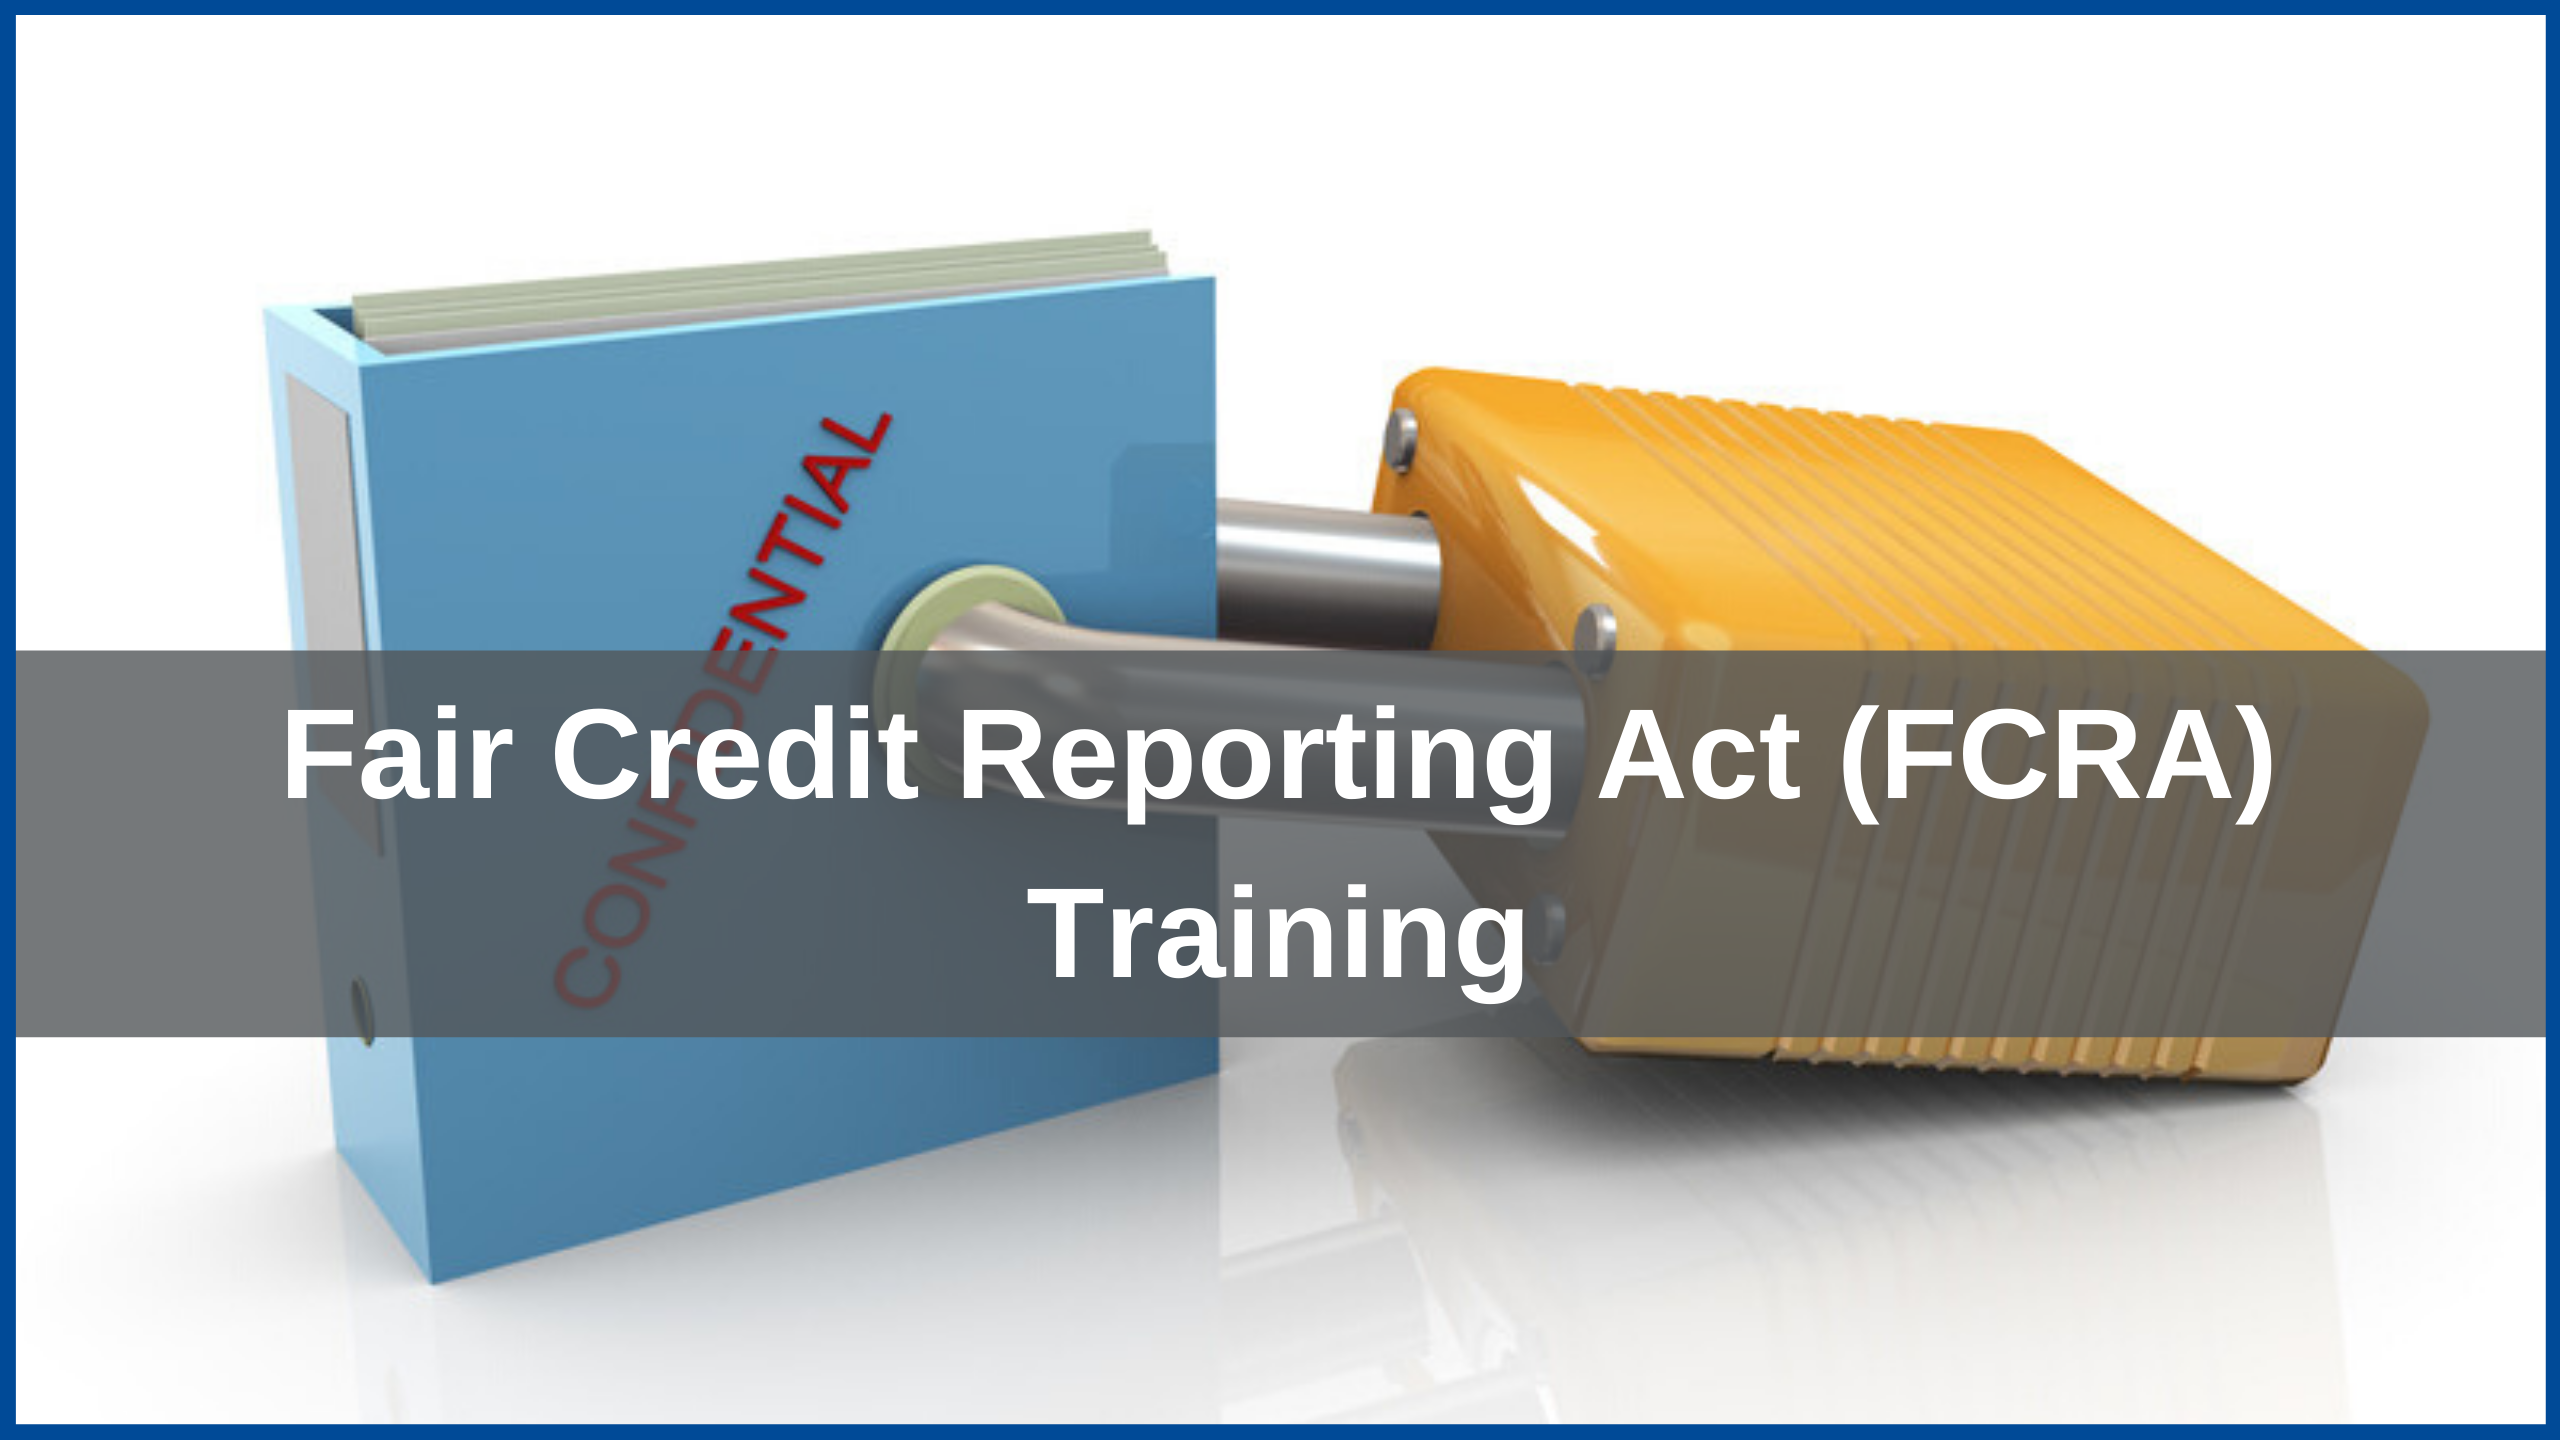 Fair Credit Reporting Act (FCRA) Training